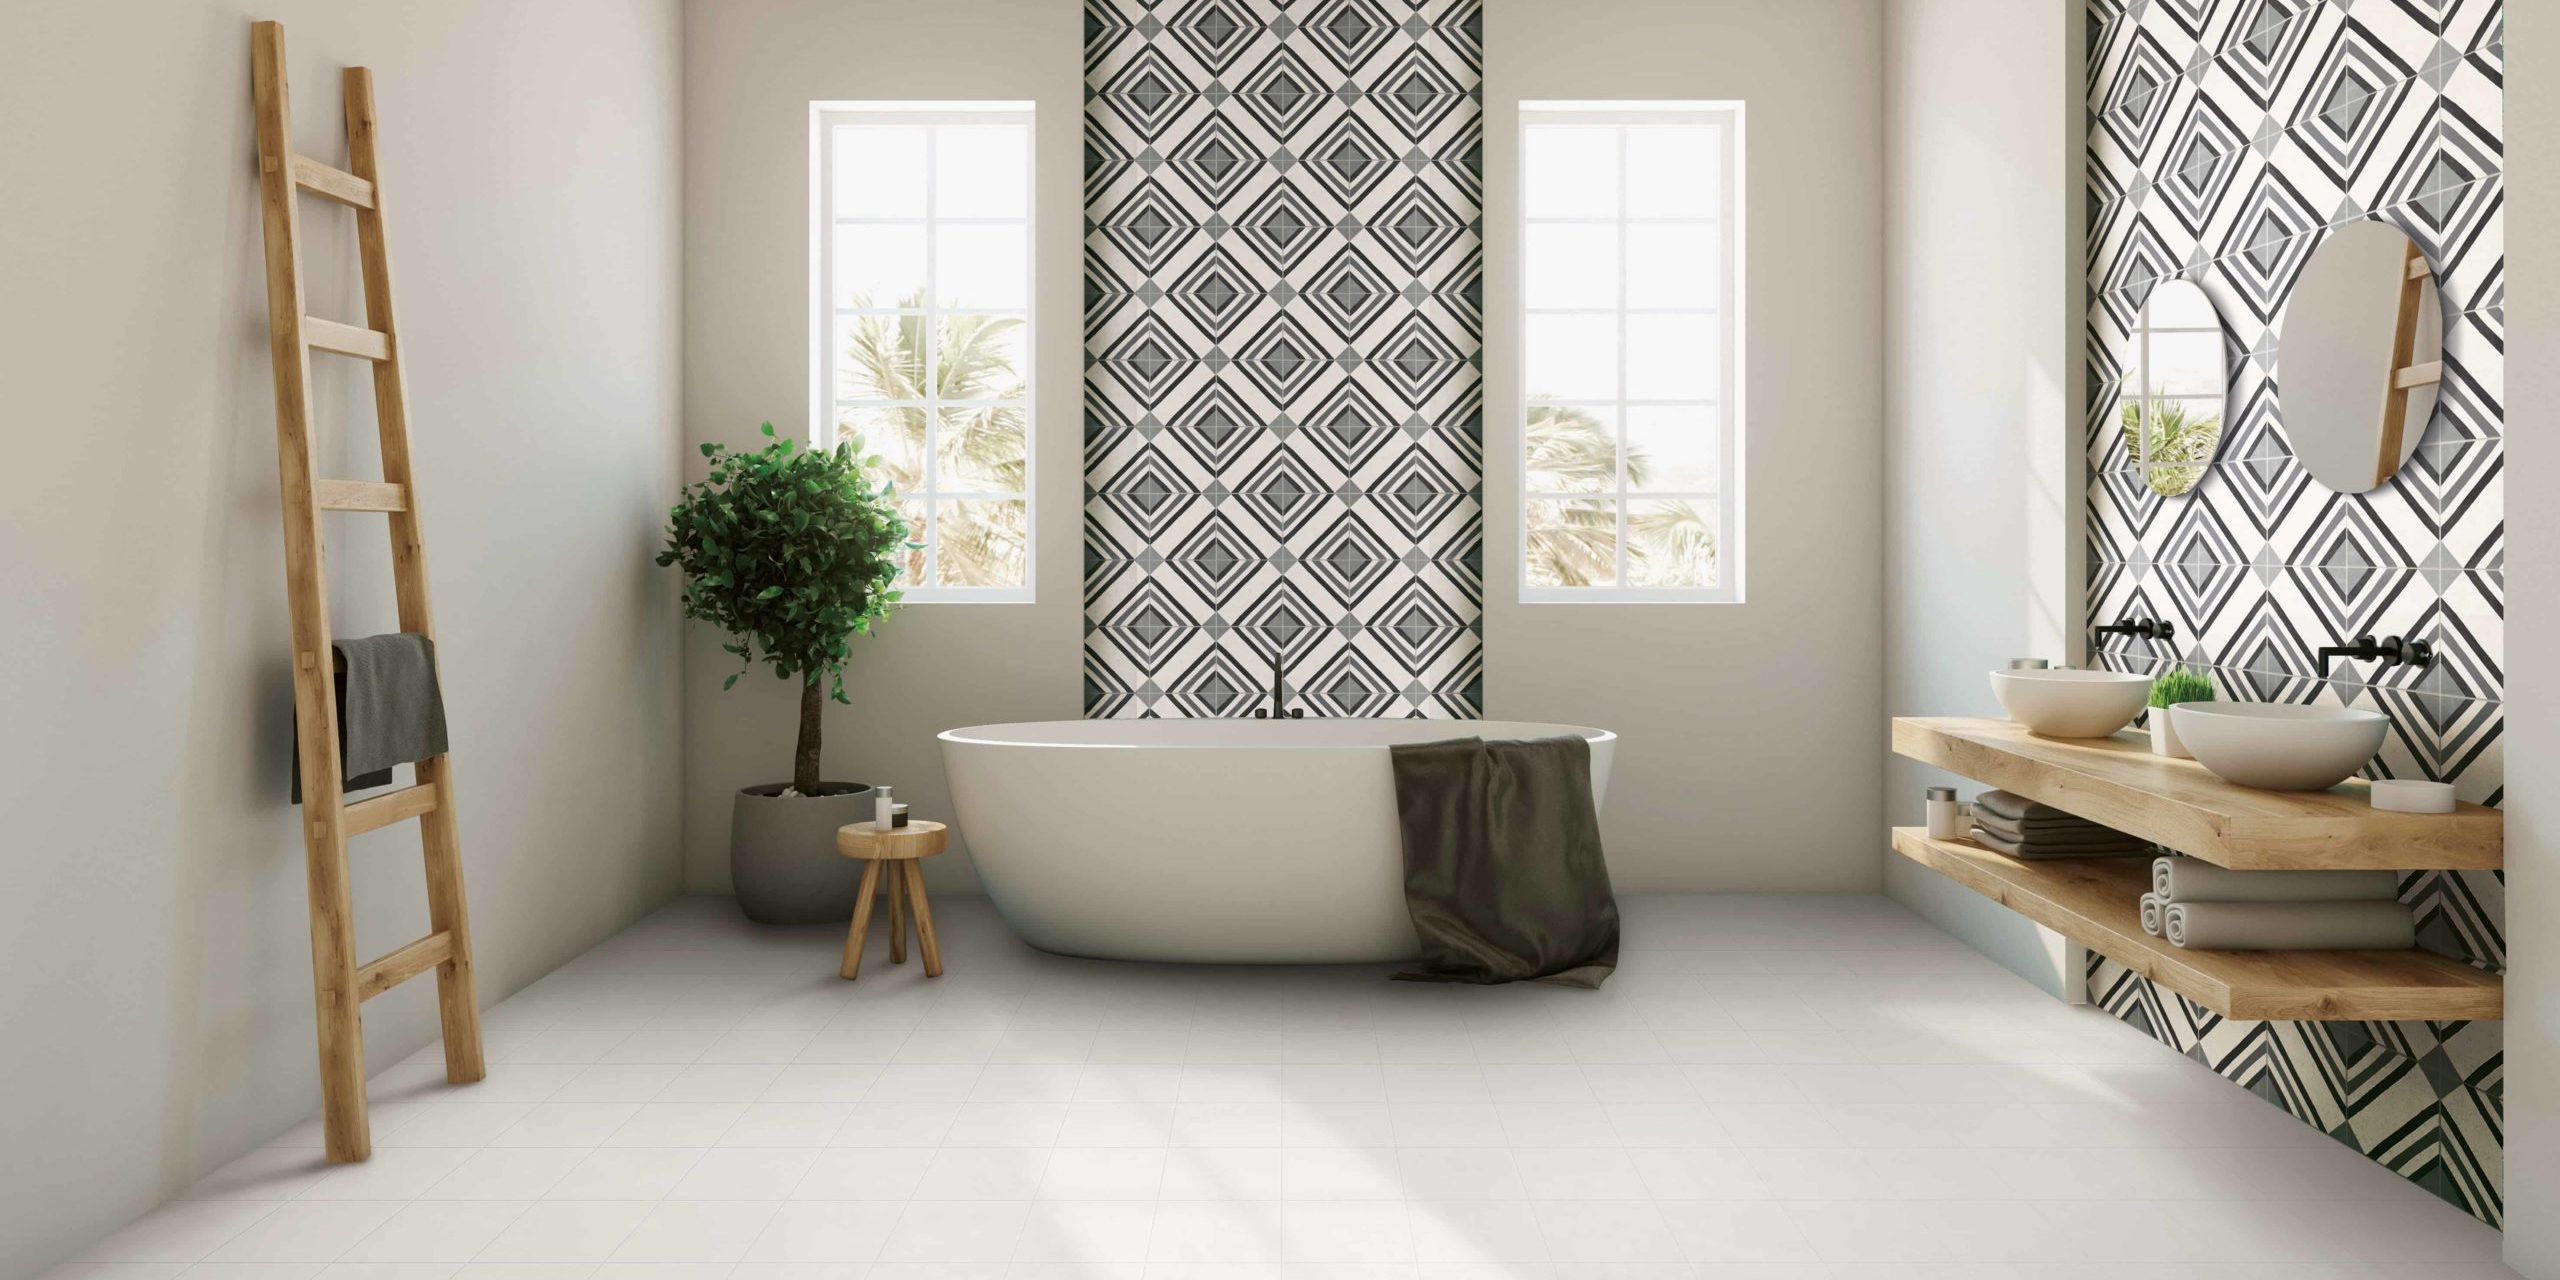 emc tiles patterned wall tiles scandinavian spa bathroom trend